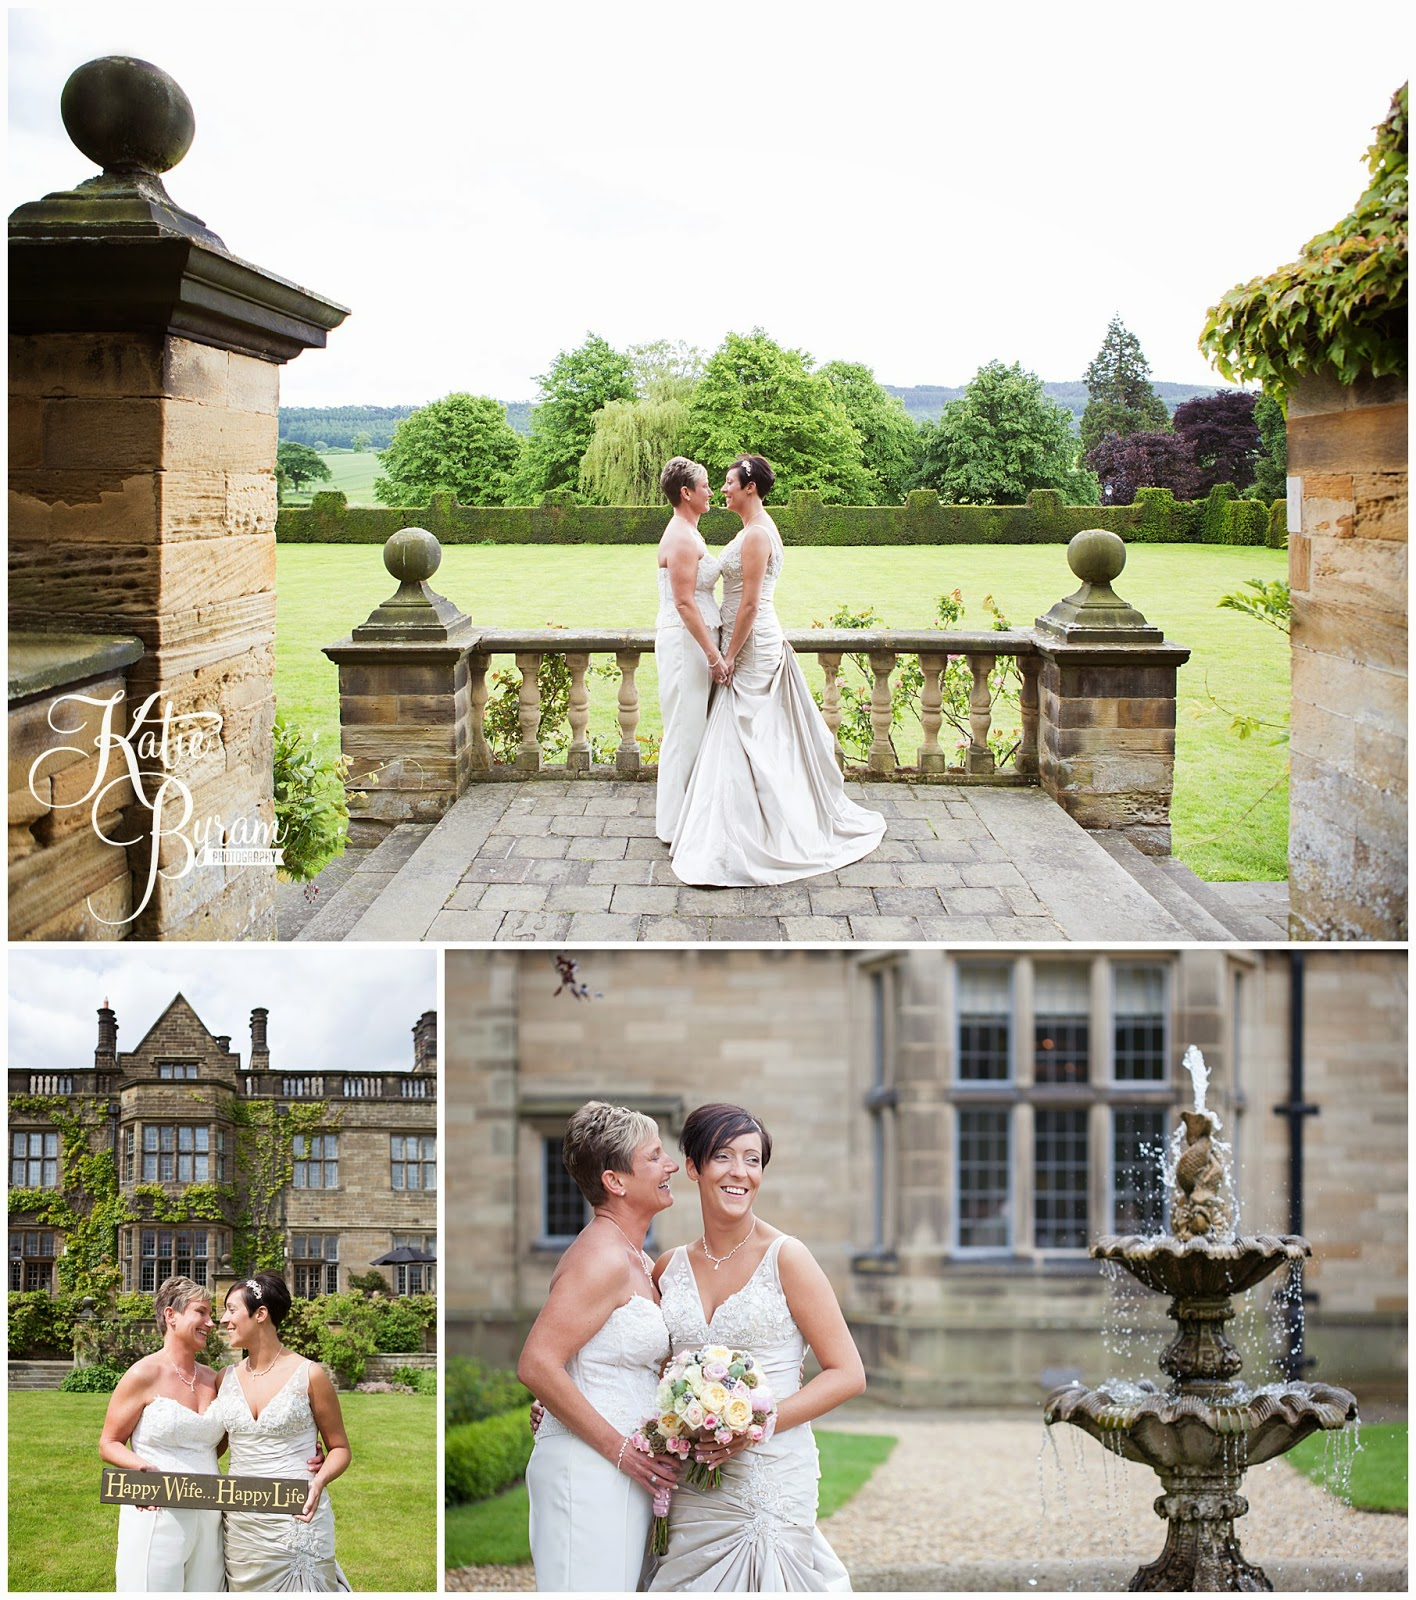 two bride wedding, lesbian wedding, lgbt wedding, gisborough hall wedding, north yorkshire wedding photographer, katie byram photographer, same-sex couples, bex bridal, elizabeth george bridal, north yorkshire wedding venues